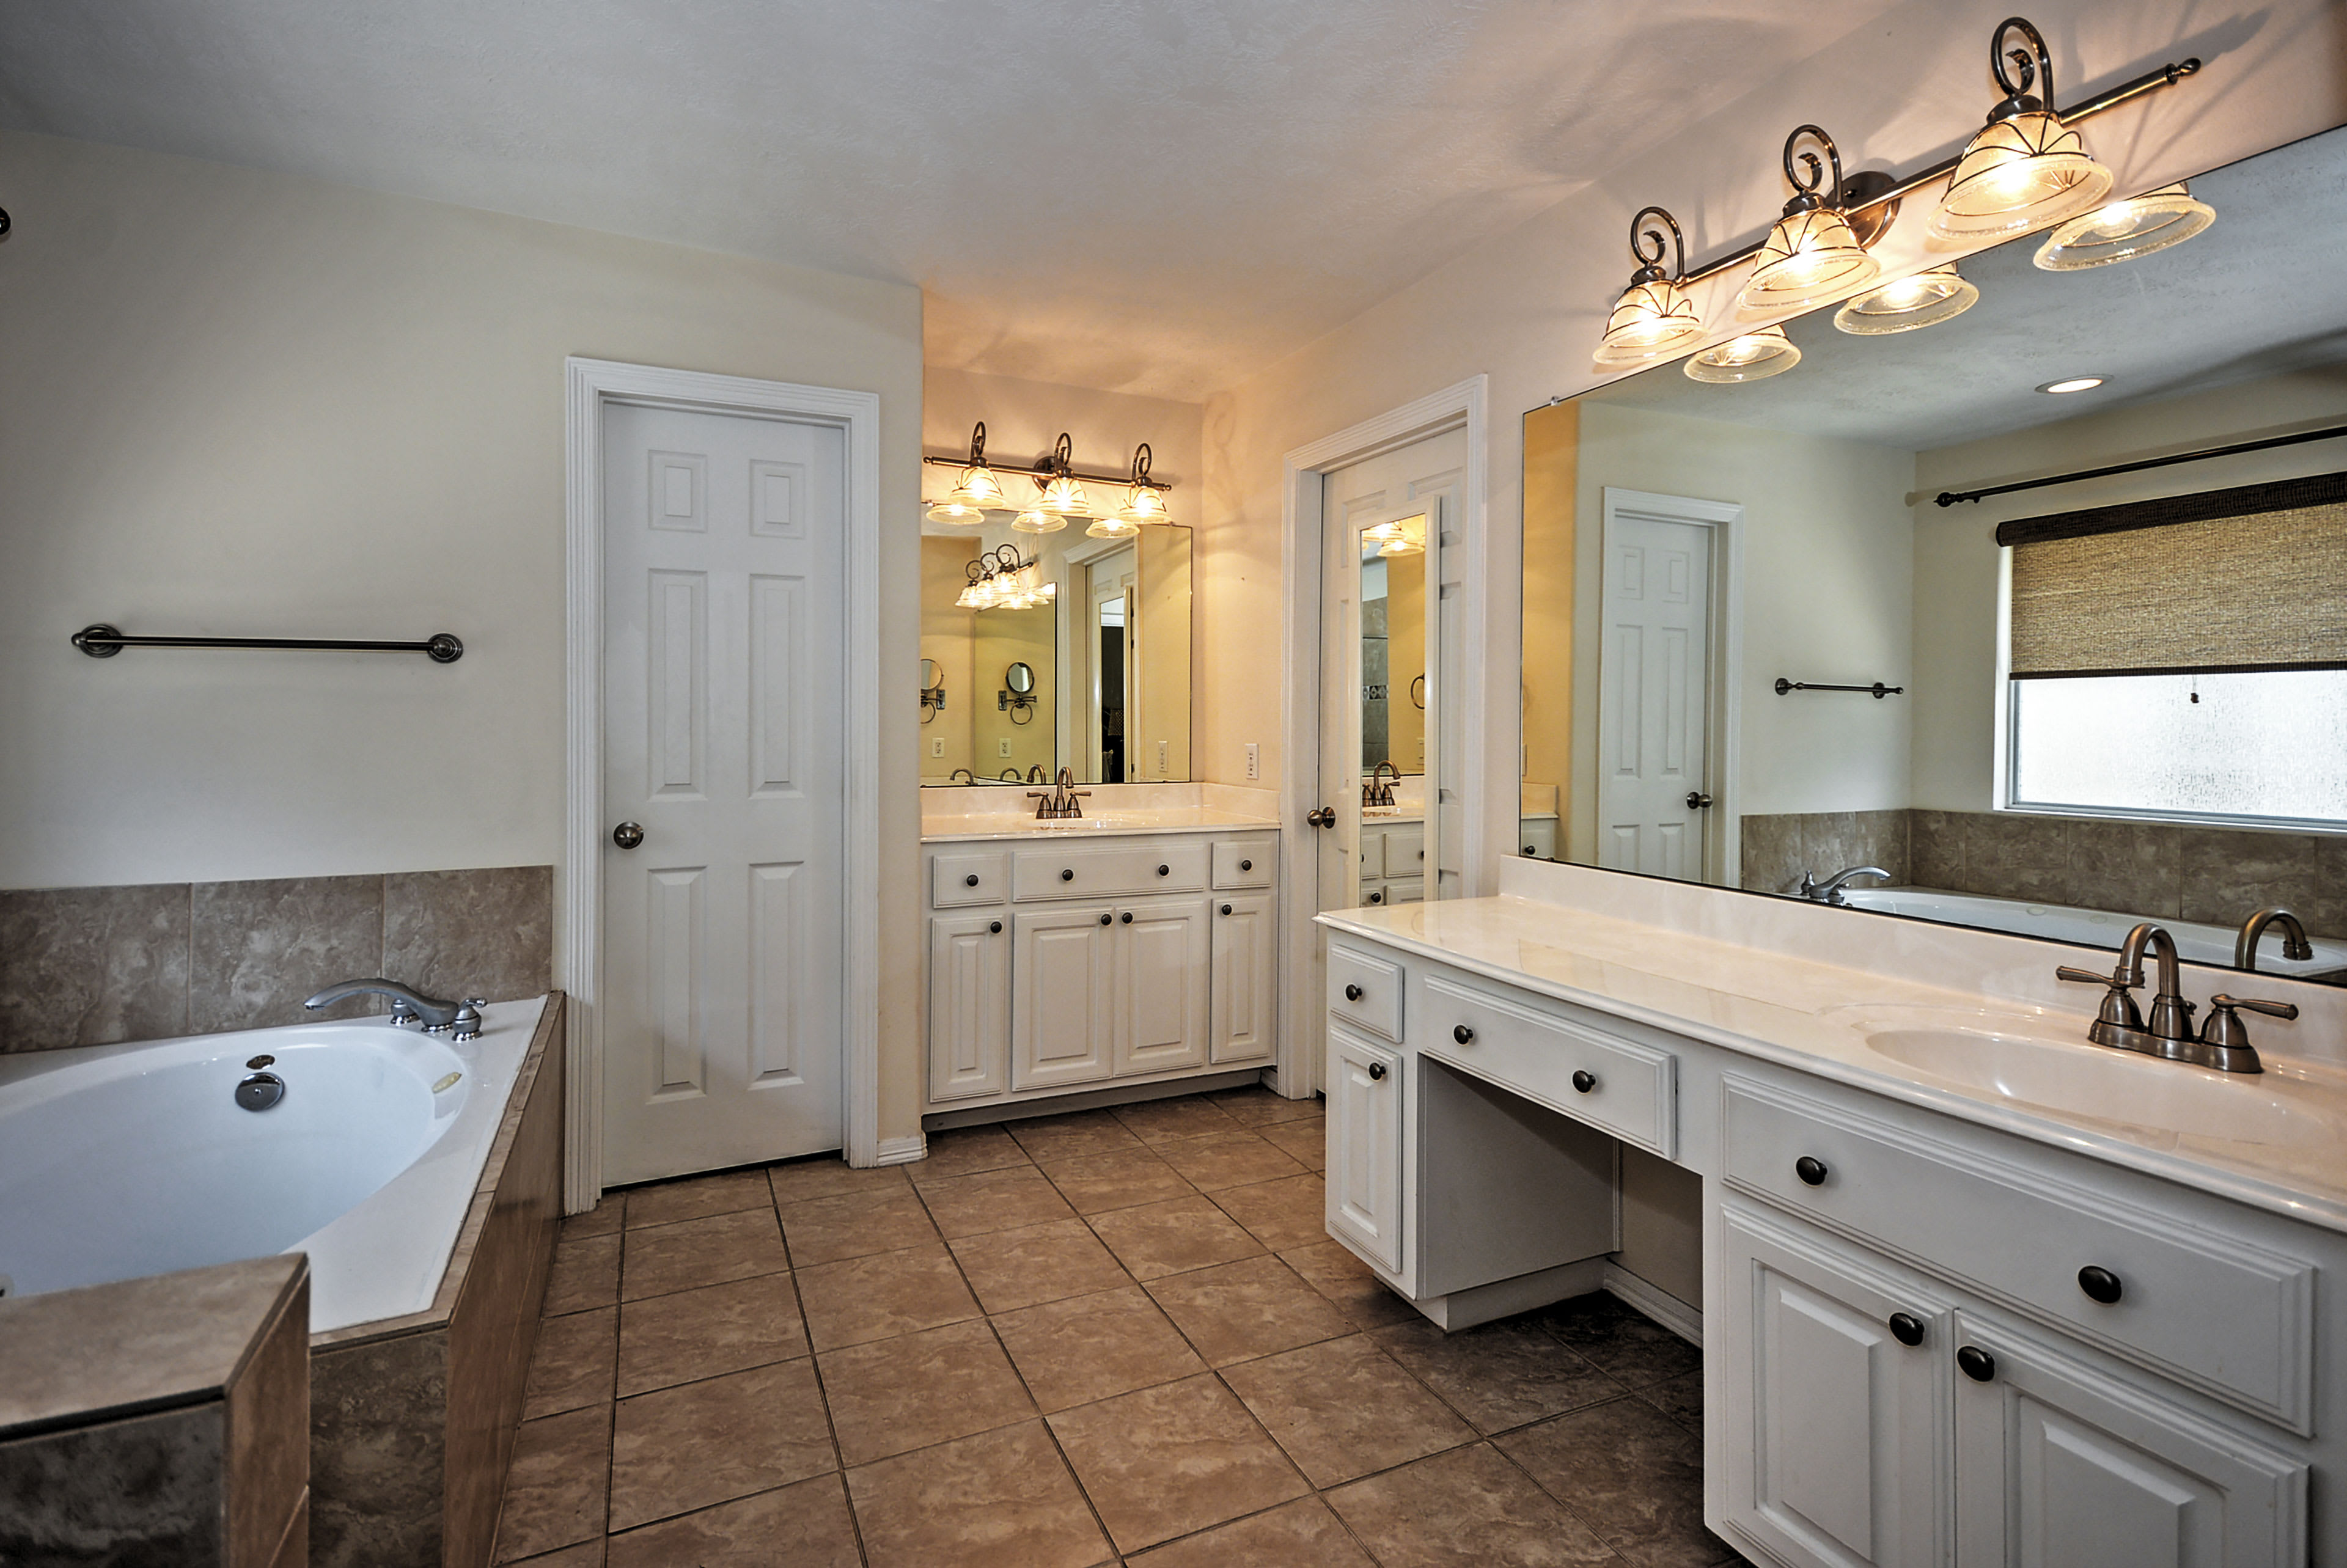 The master bathroom is both spacious and luxurious.